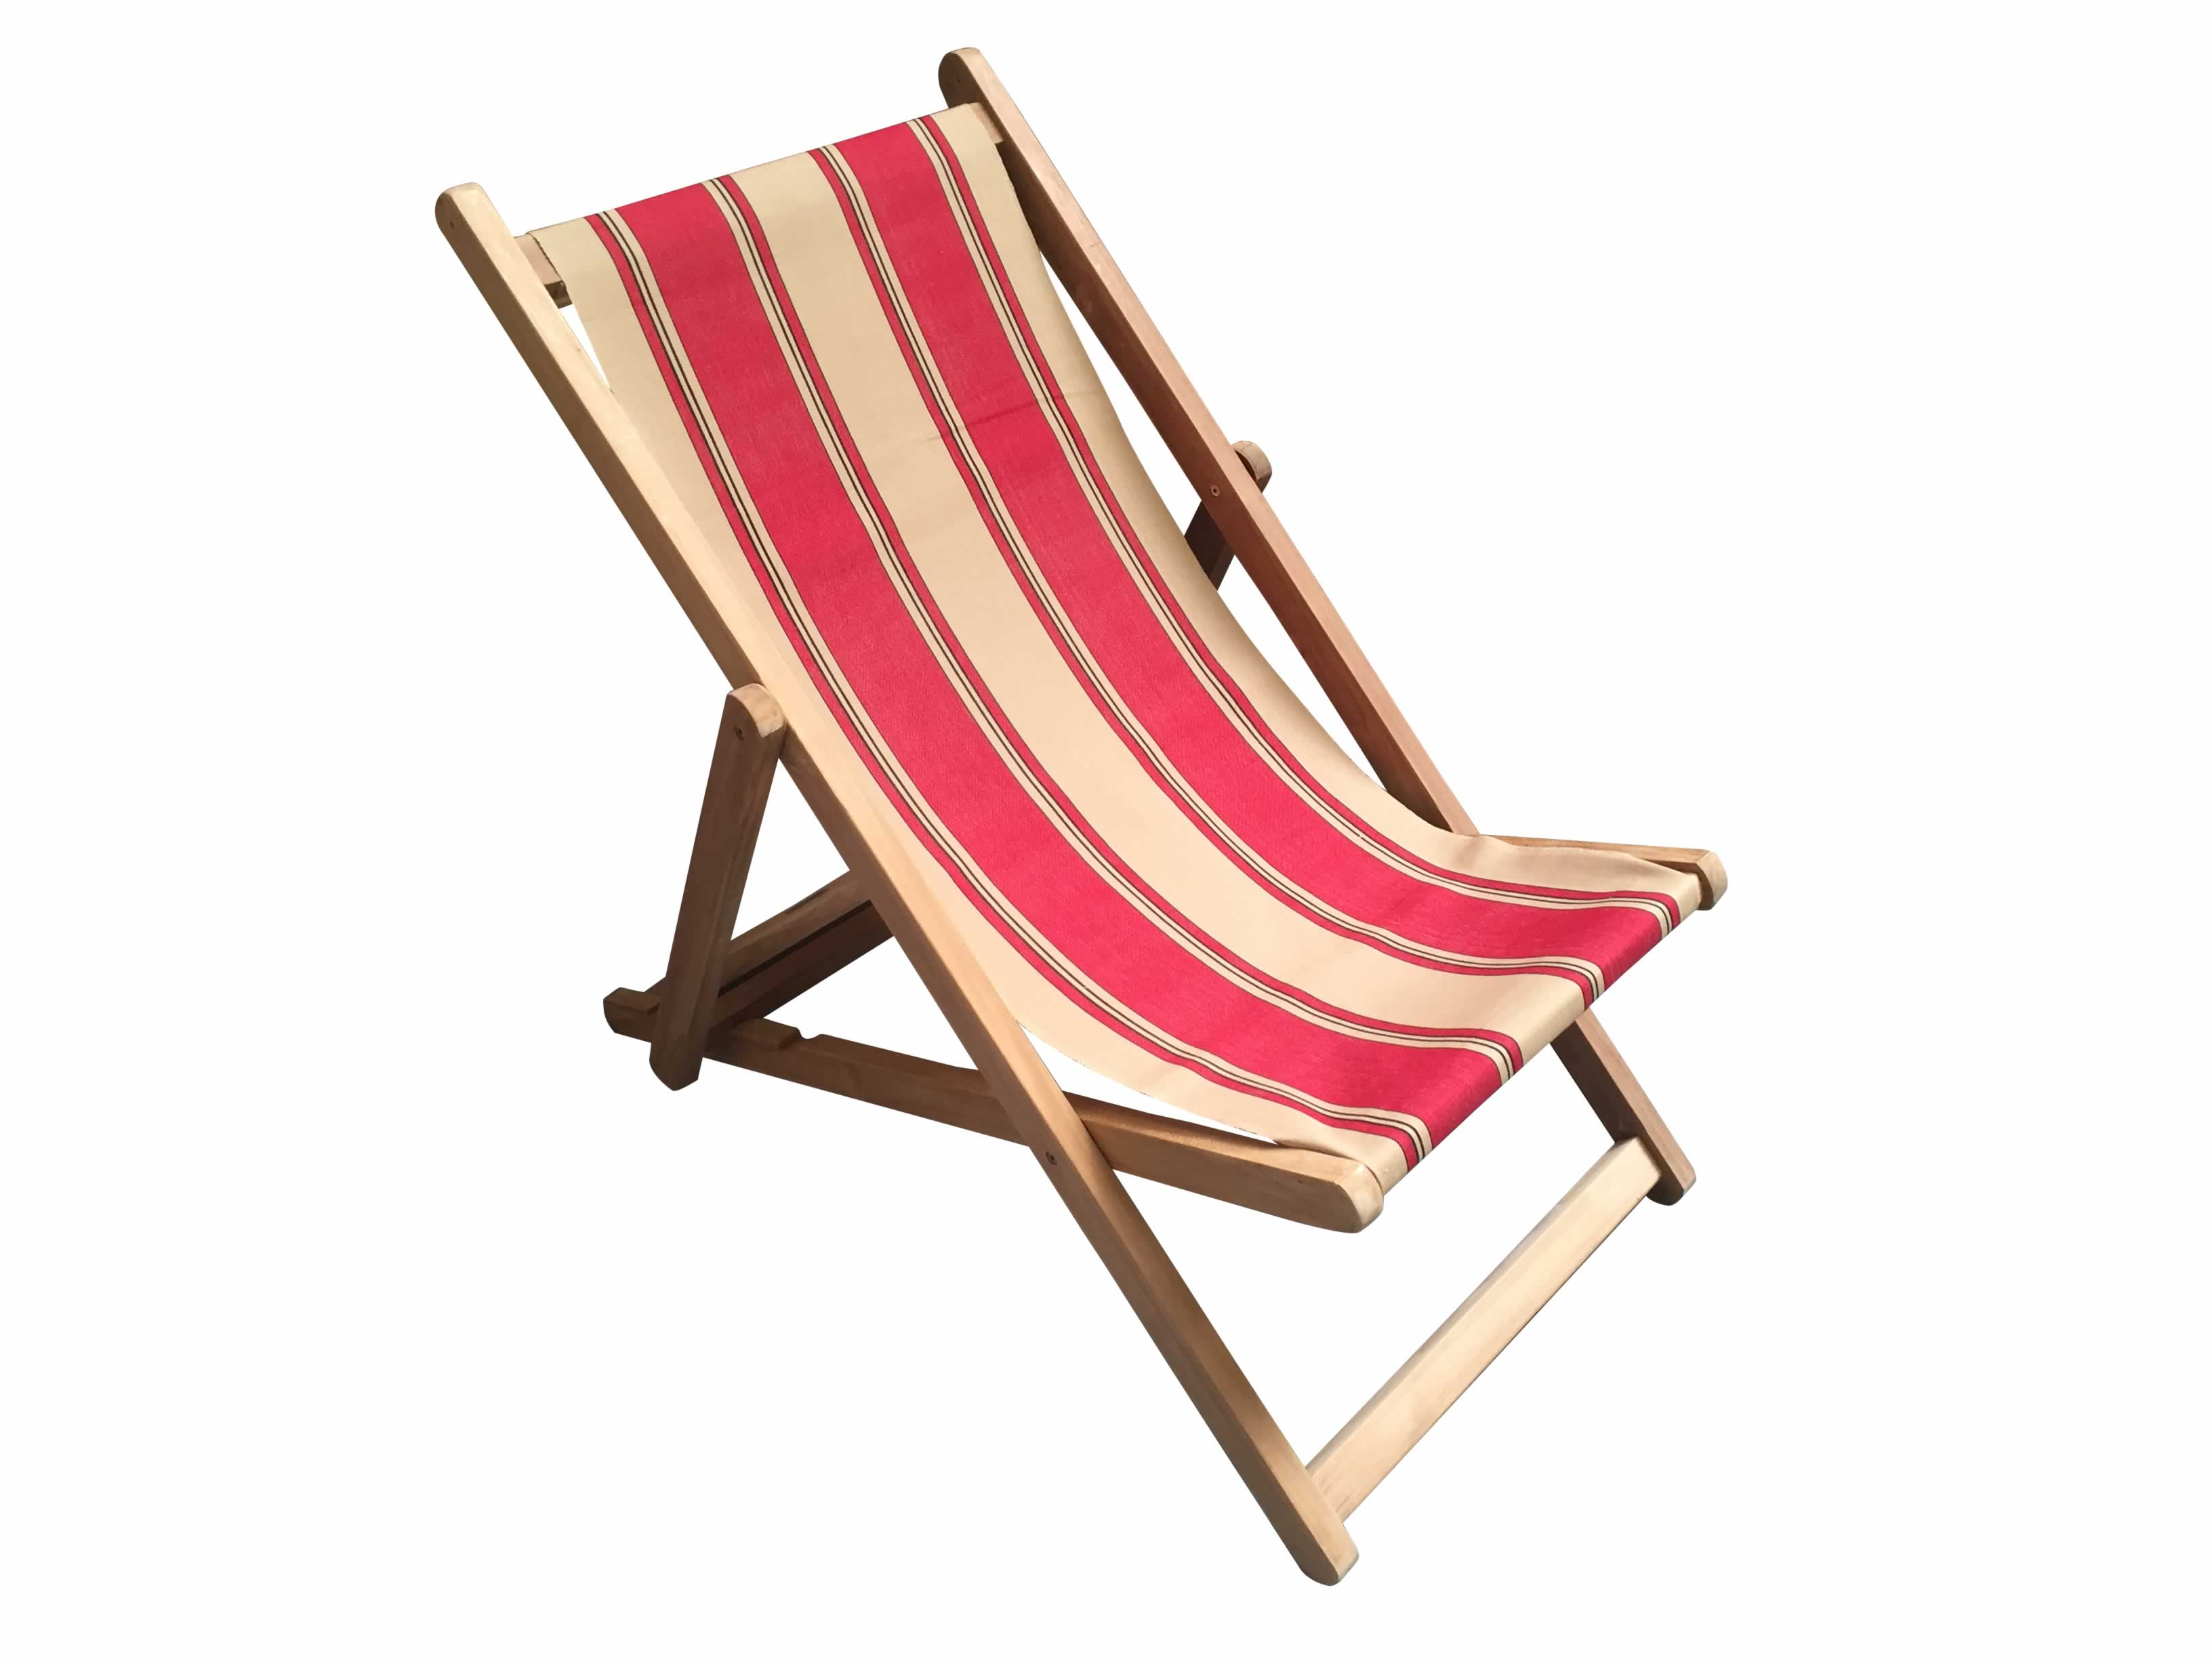 Red Deckchairs | Folding Wooden Deck Chairs - Steeplechase Stripe